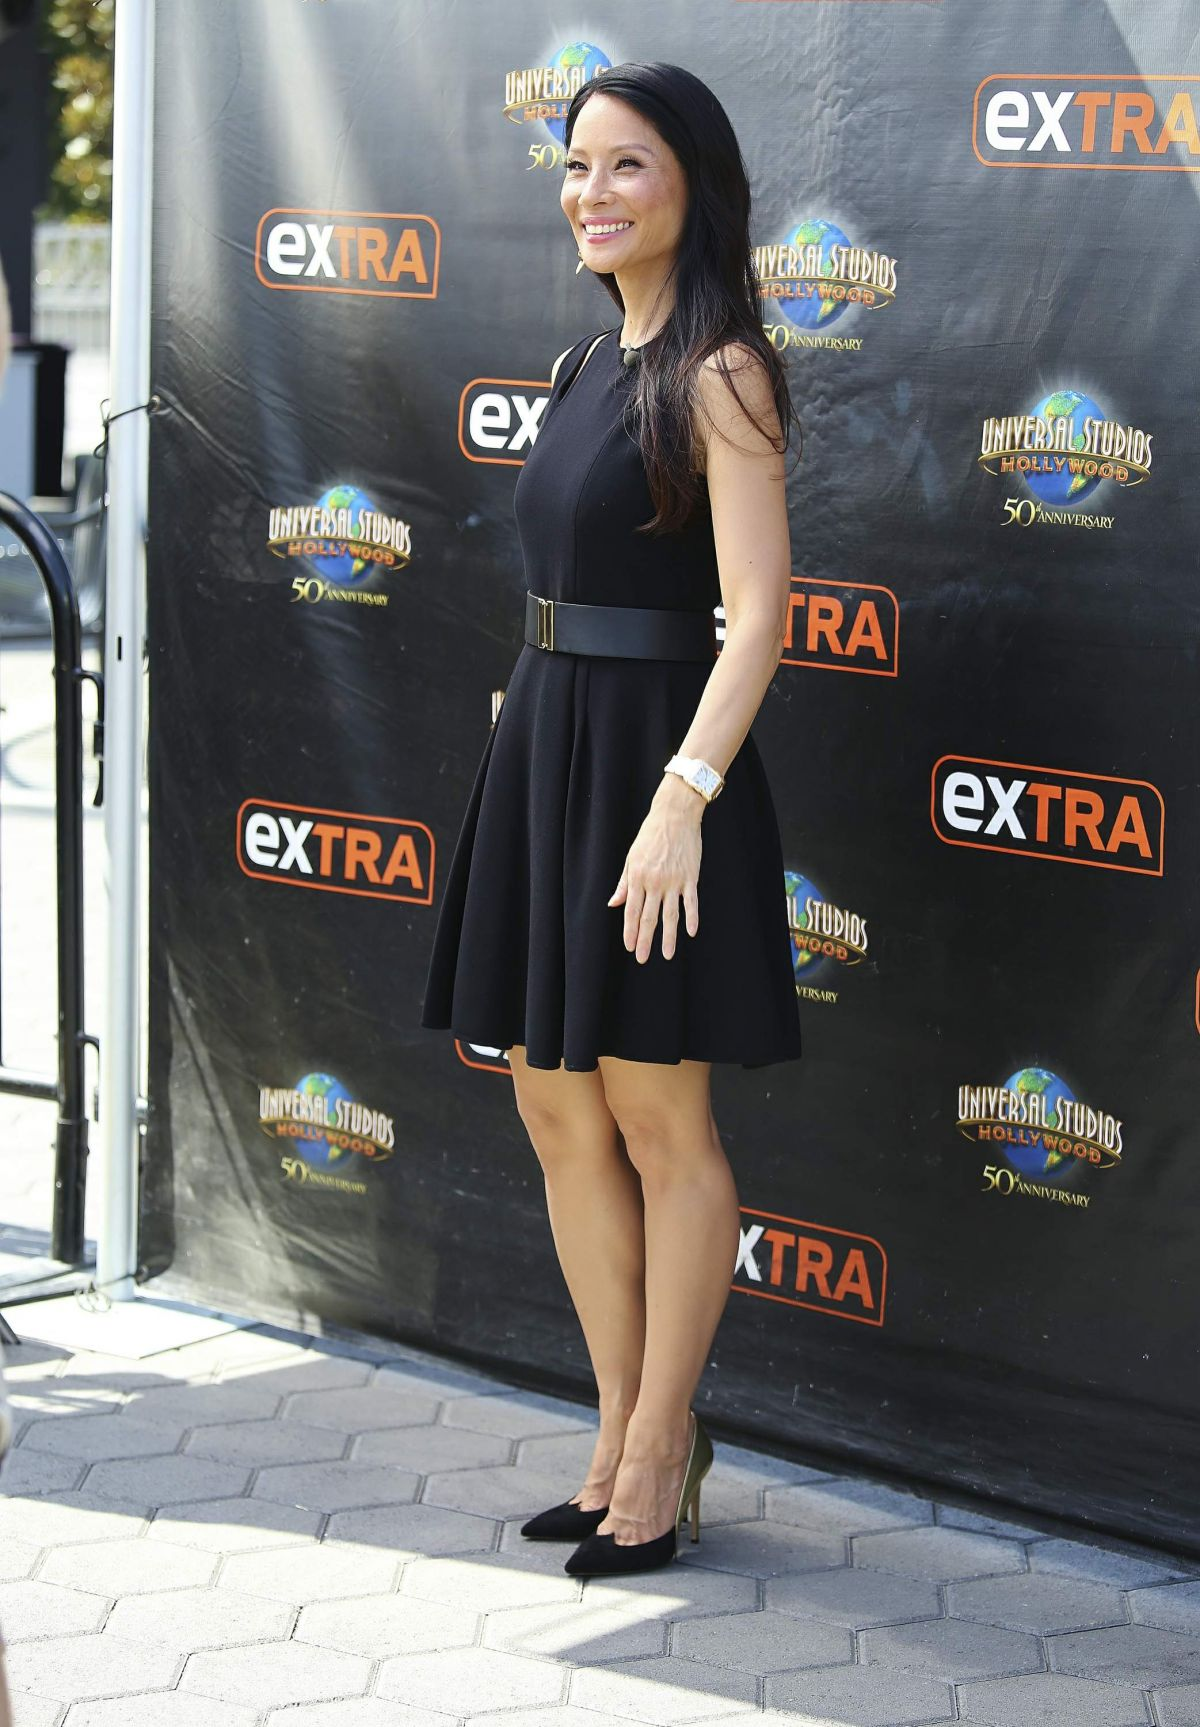 LUCY LIU Leves 'Extra' at Universal Studios in Hollywood ...